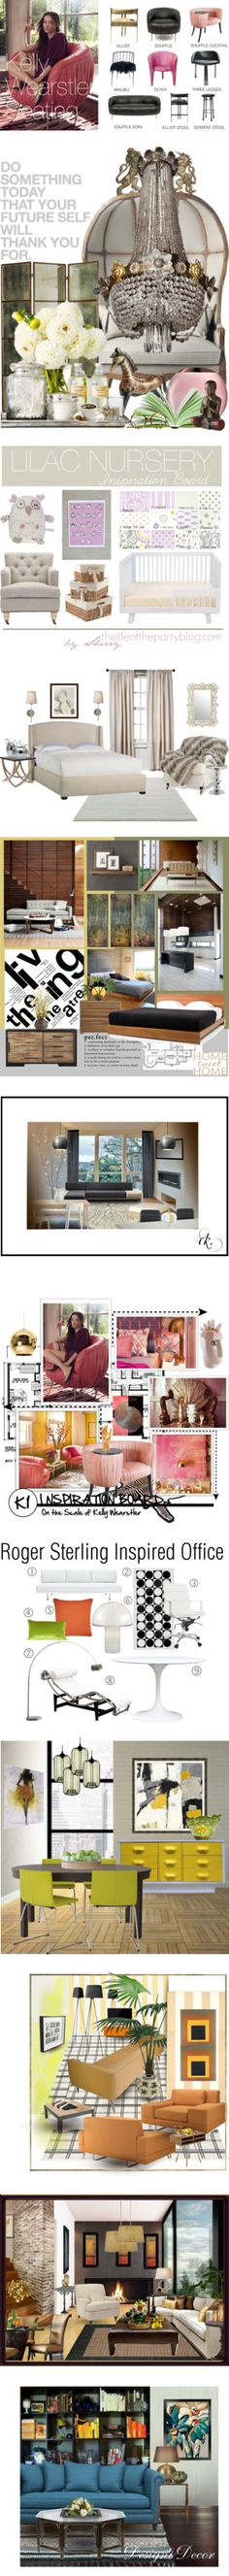 """""""Top Interior Design Sets for Apr 14th, 2013"""" by polyvore ❤ liked on Polyvore"""